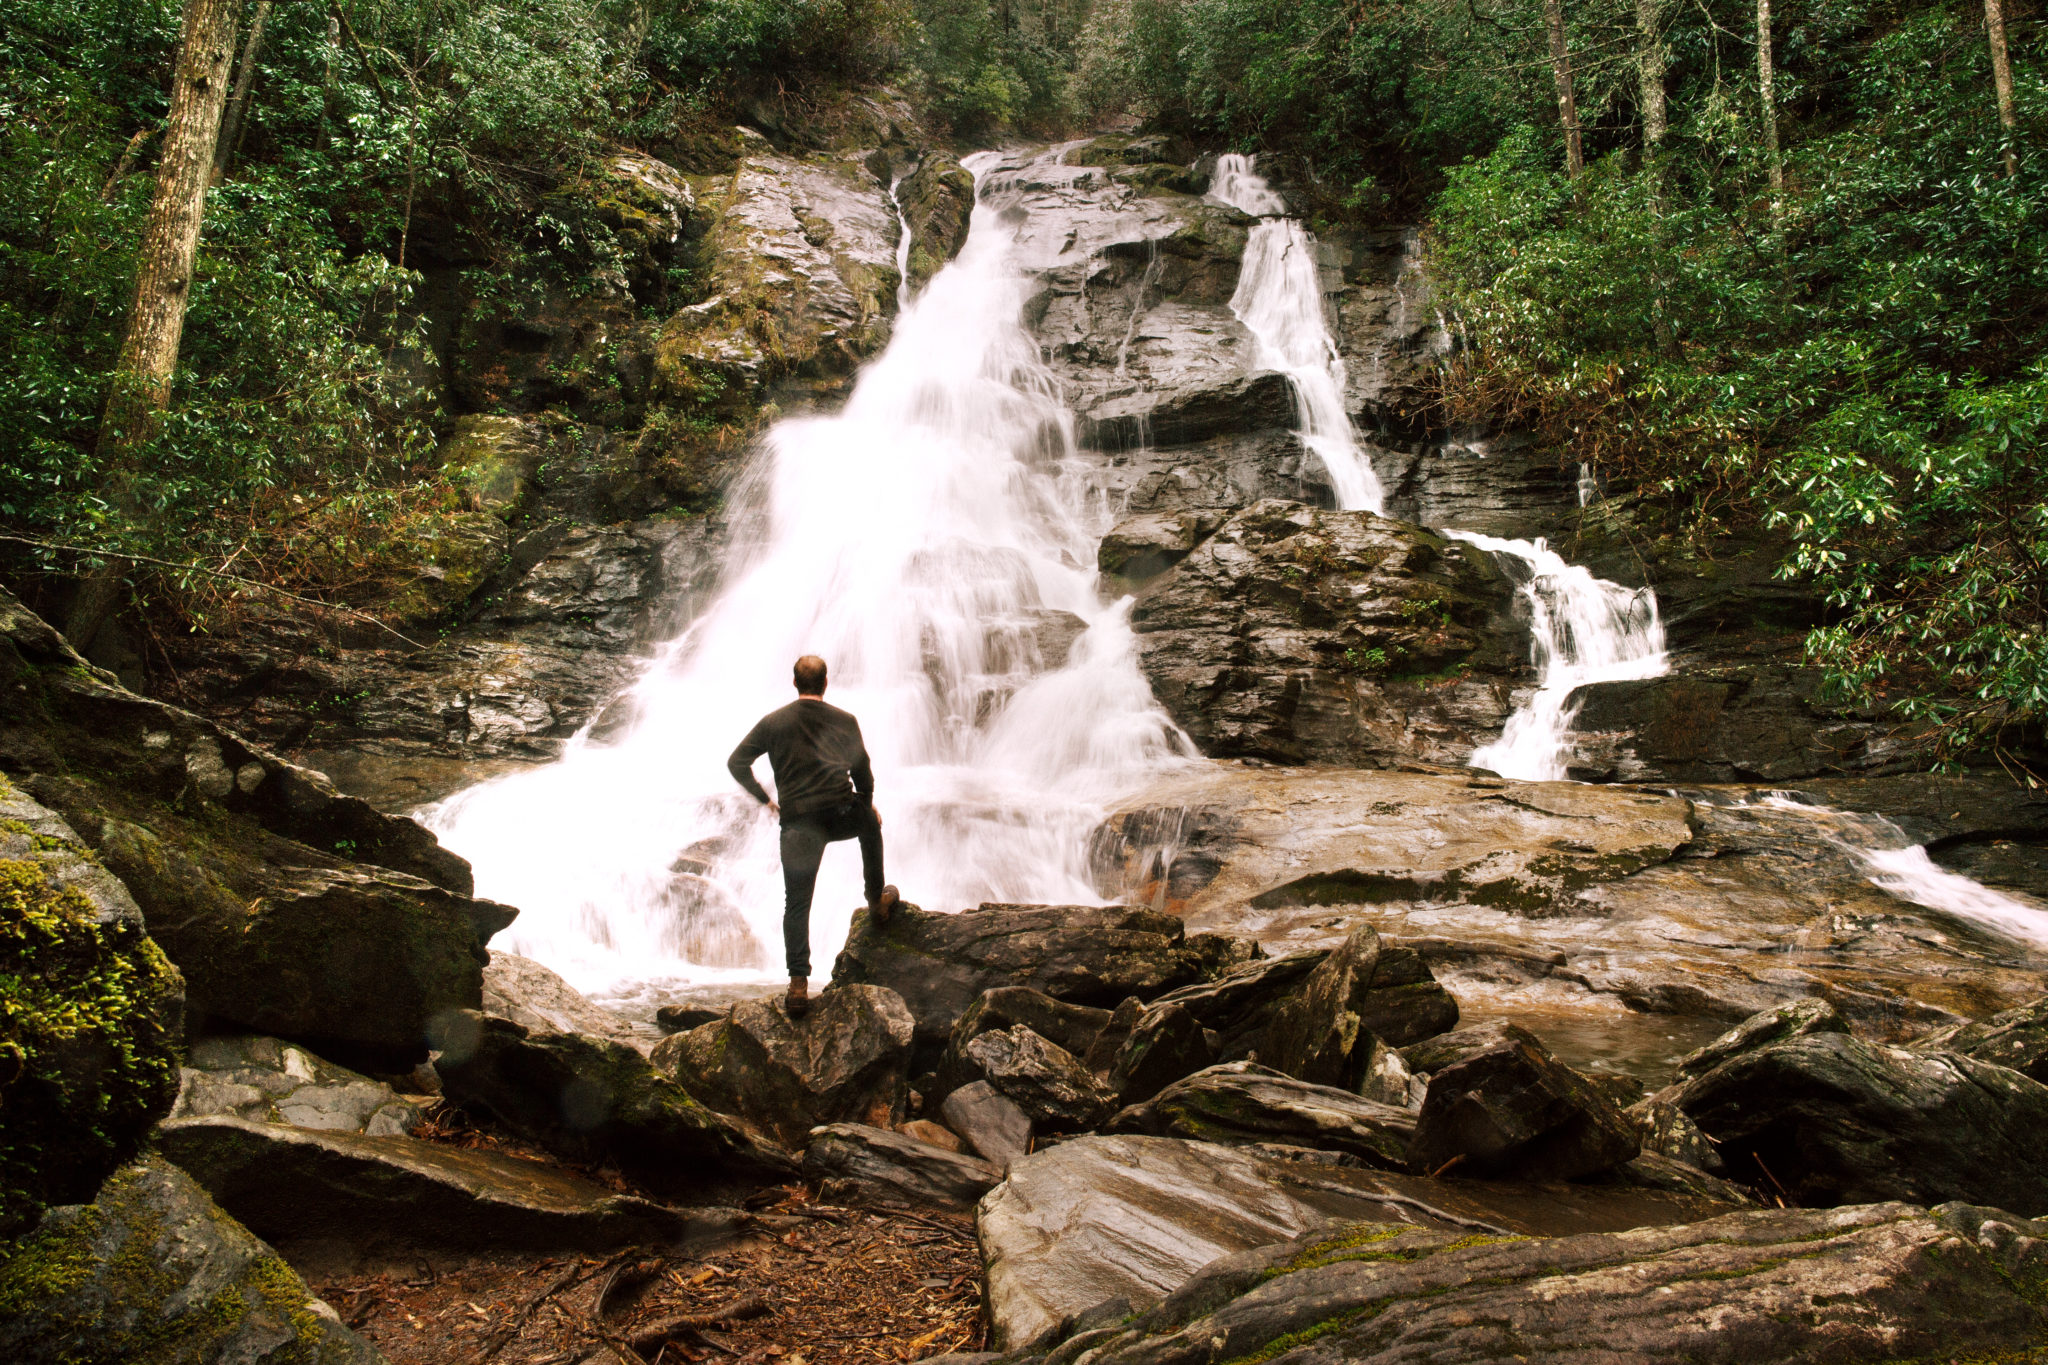 a man standing in front of High Shoals Falls near Young Harris, GA